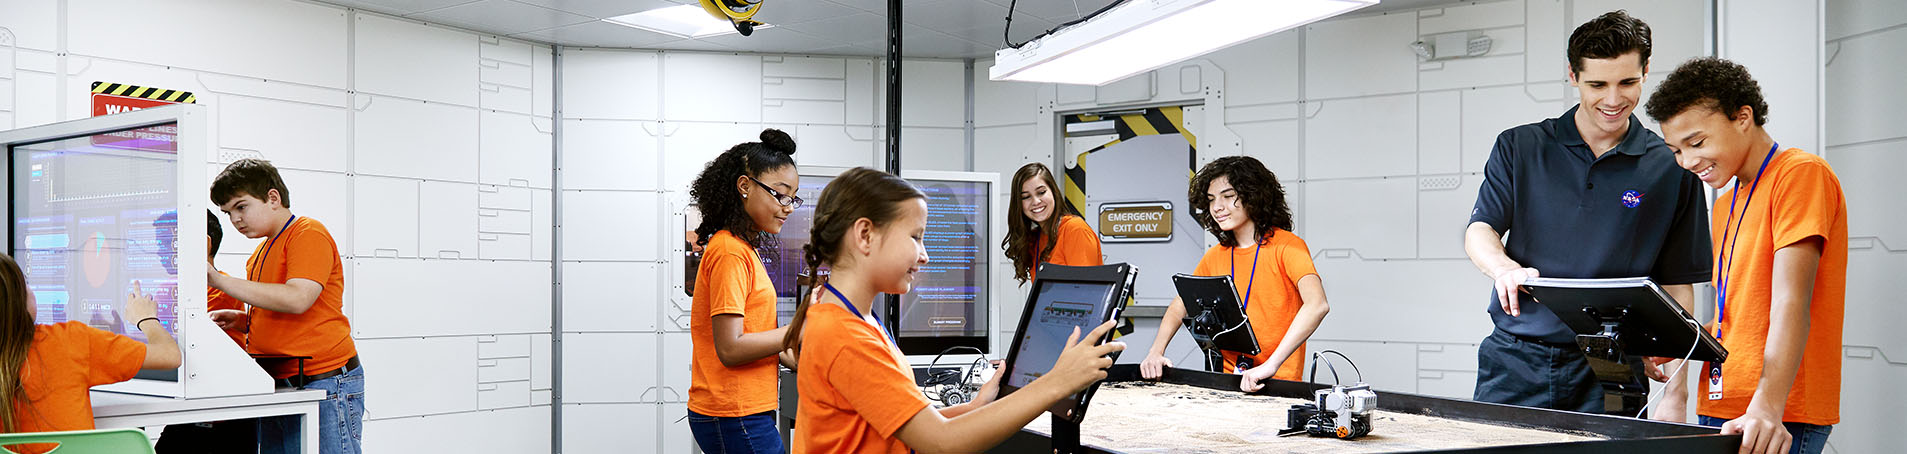 Campers in the Robotics Lab at Camp Kennedy Space Center